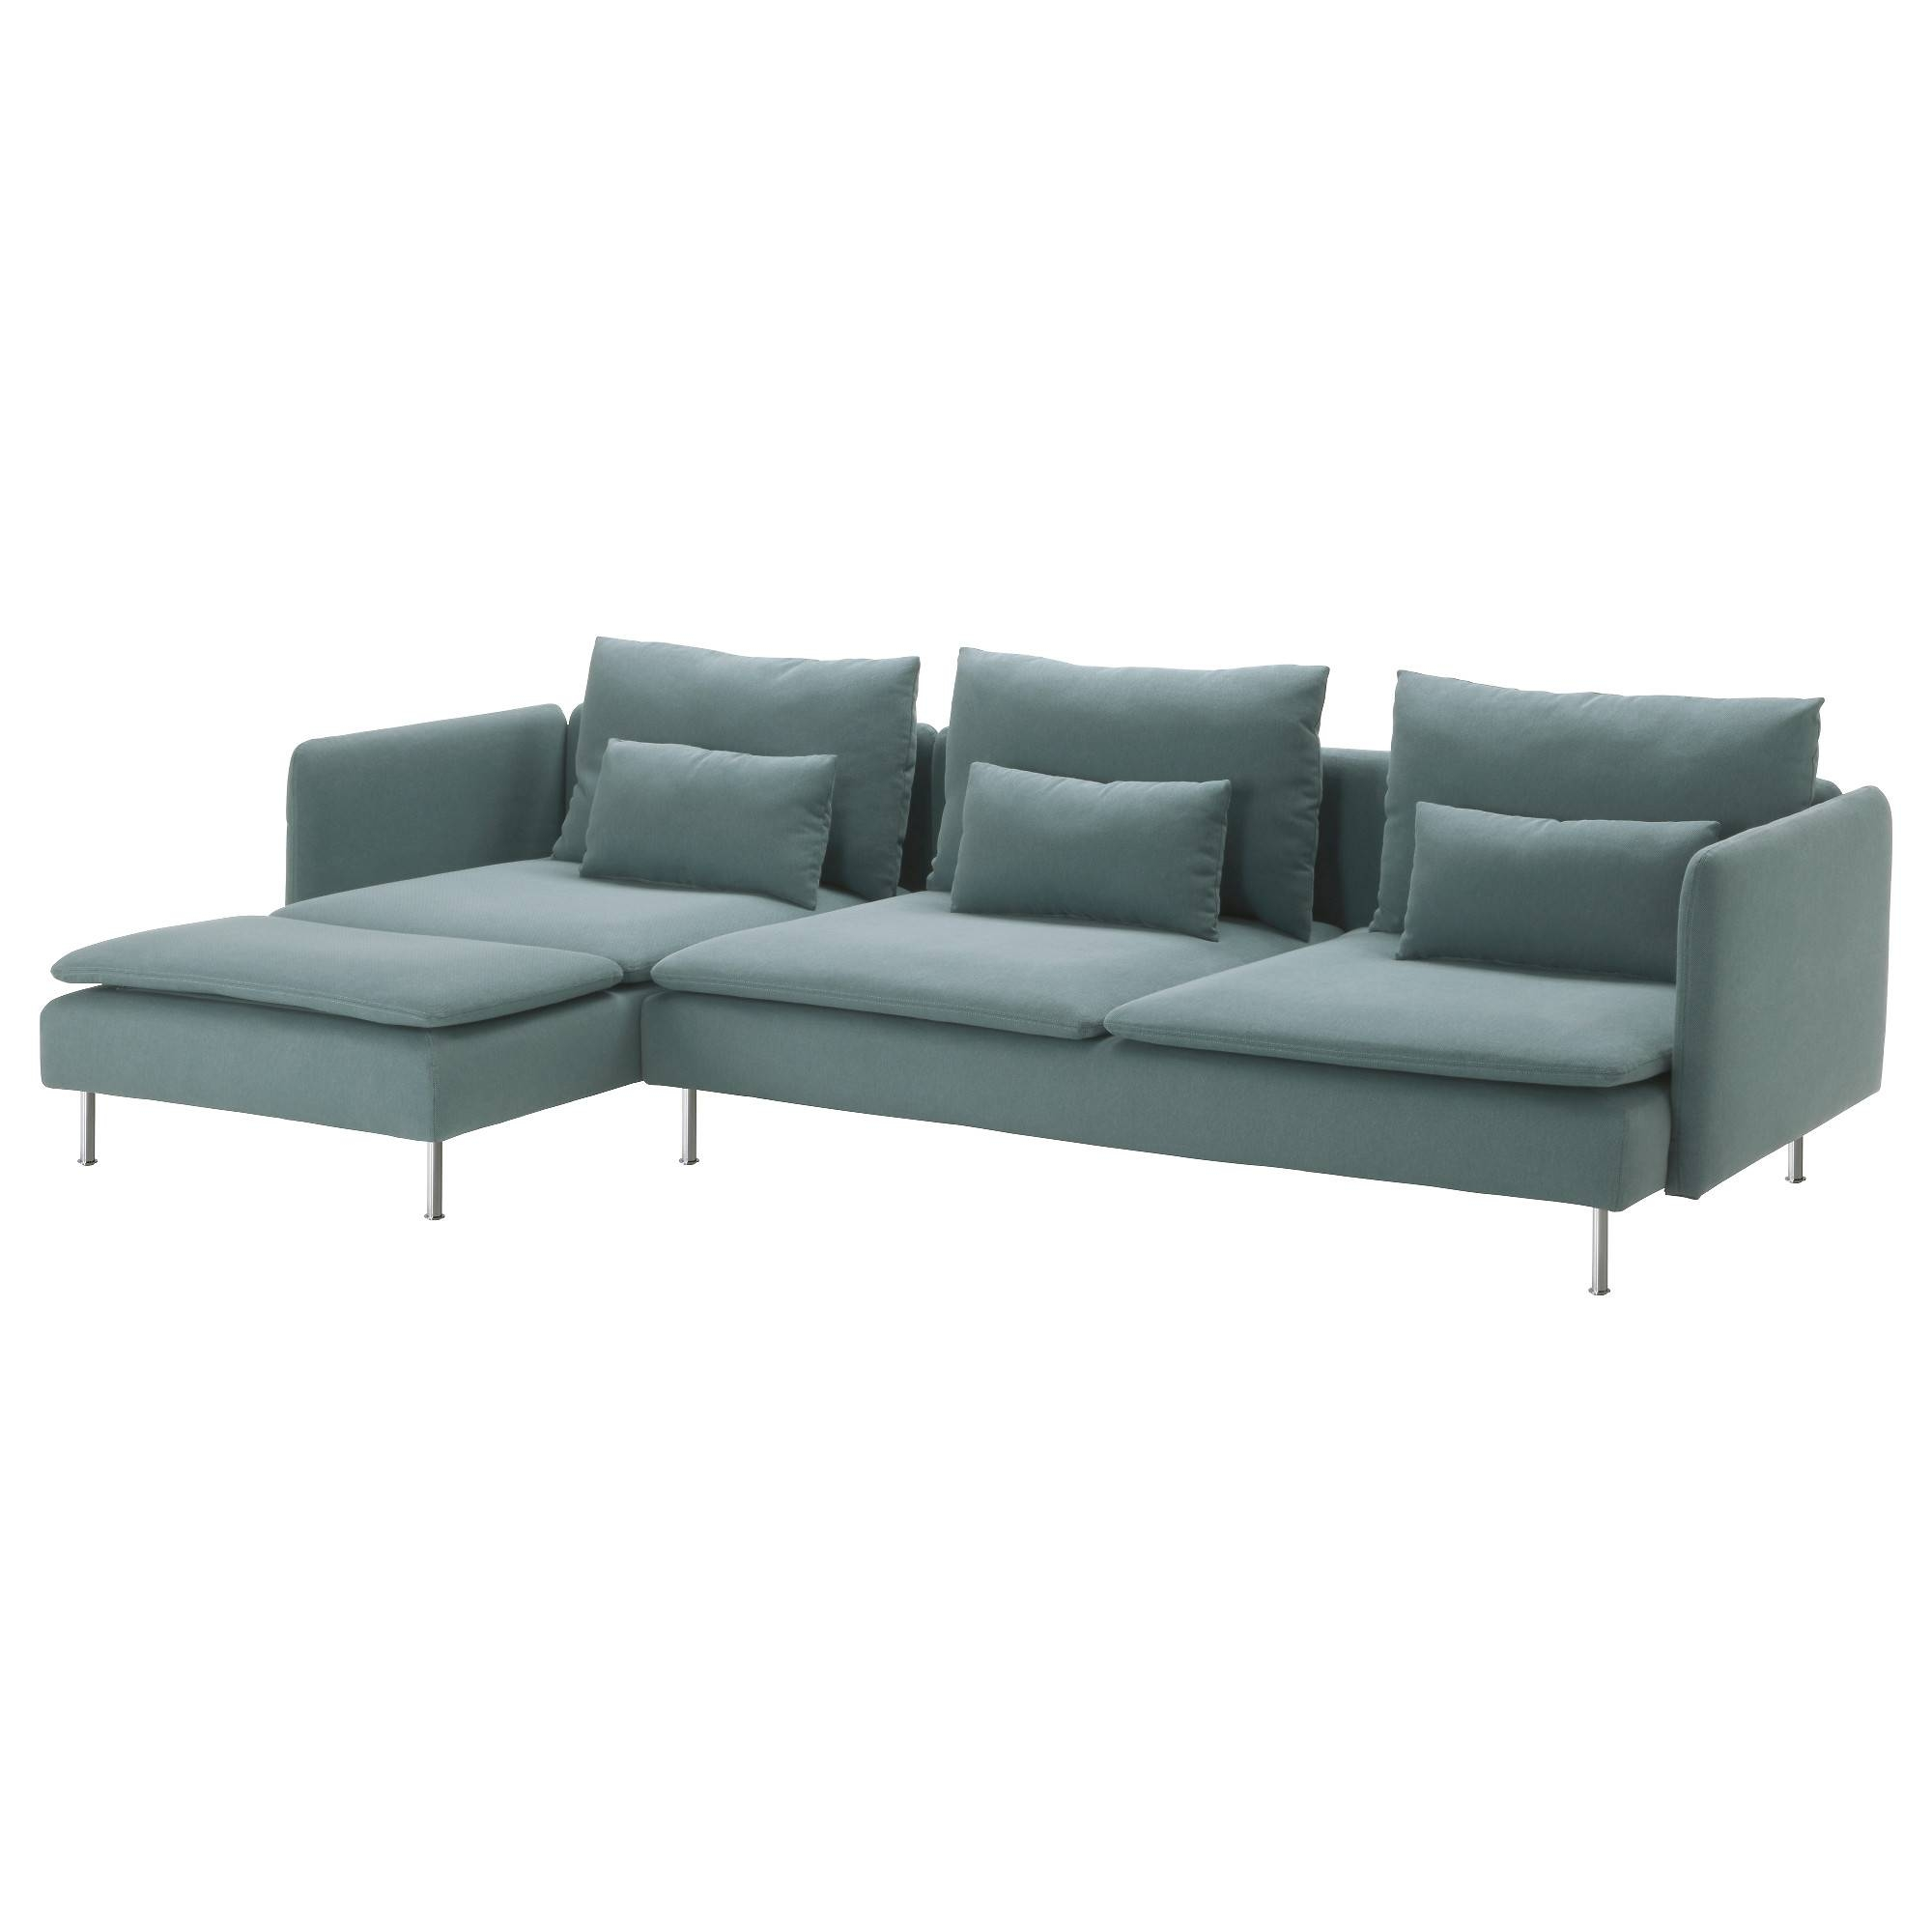 Sectional Sofas & Couches - Ikea regarding Manstad Sofa Bed With Storage From Ikea (Image 17 of 25)